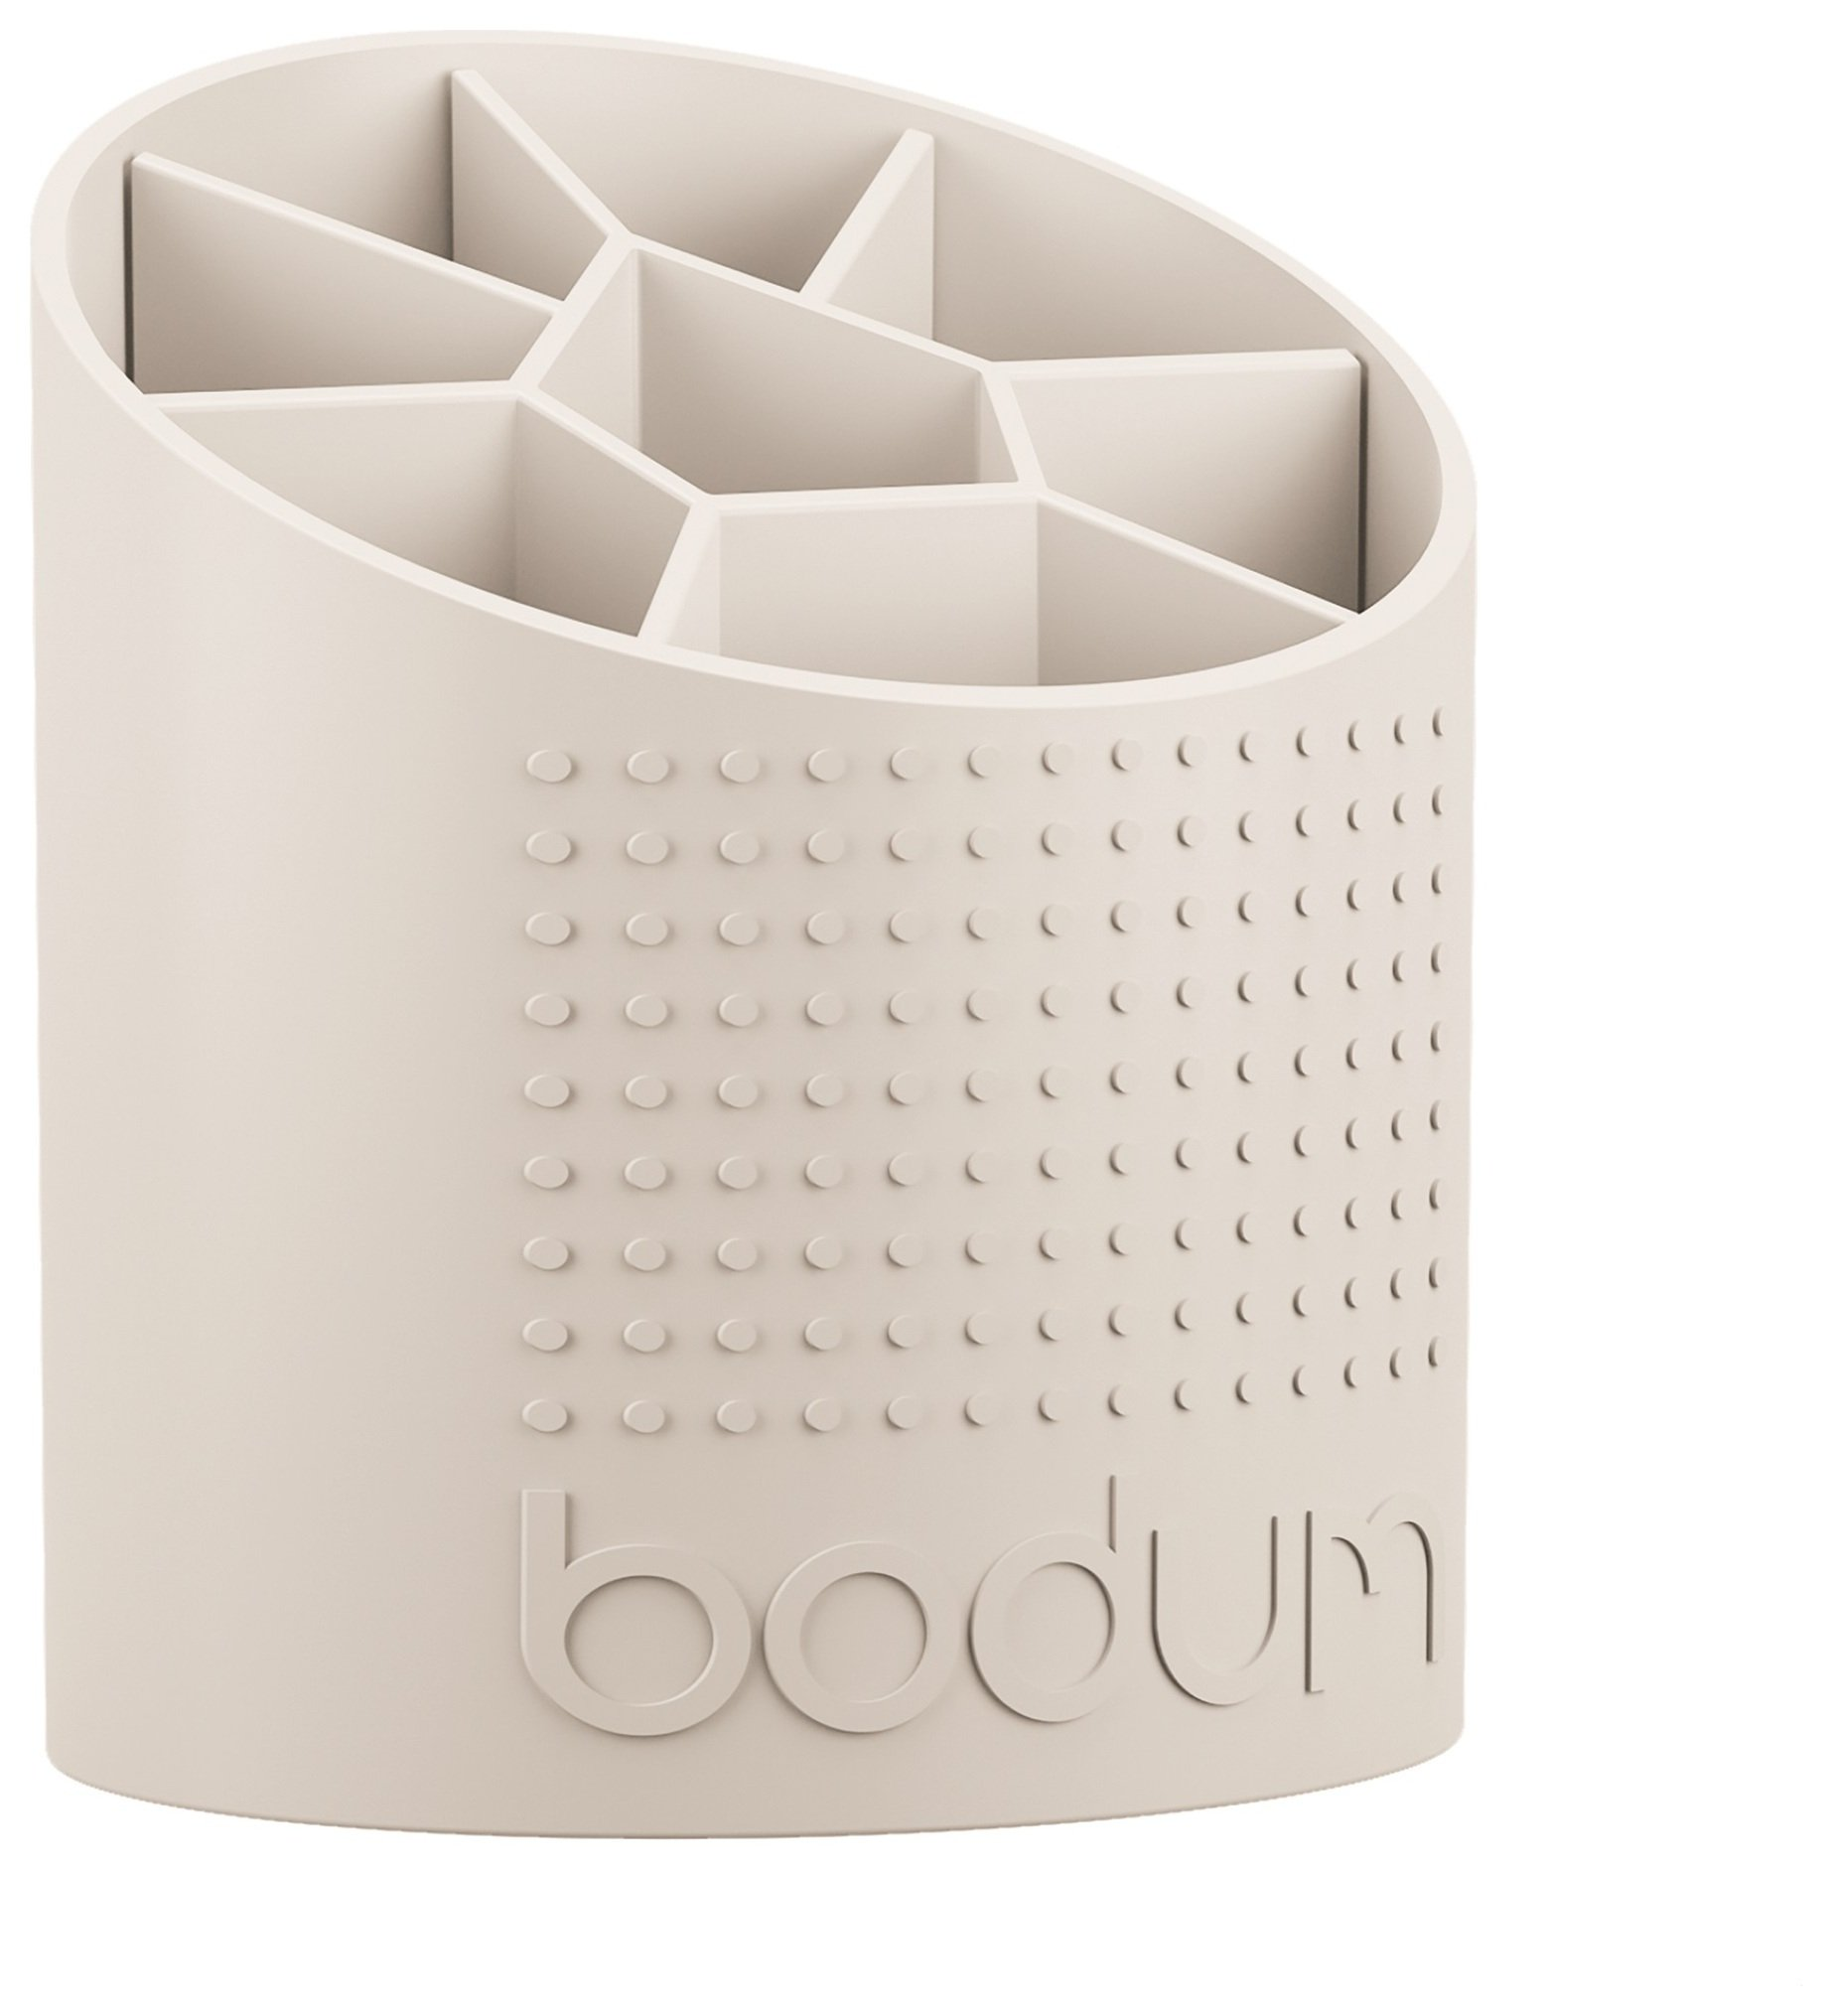 Bodum Bistro Utensil Holder - White